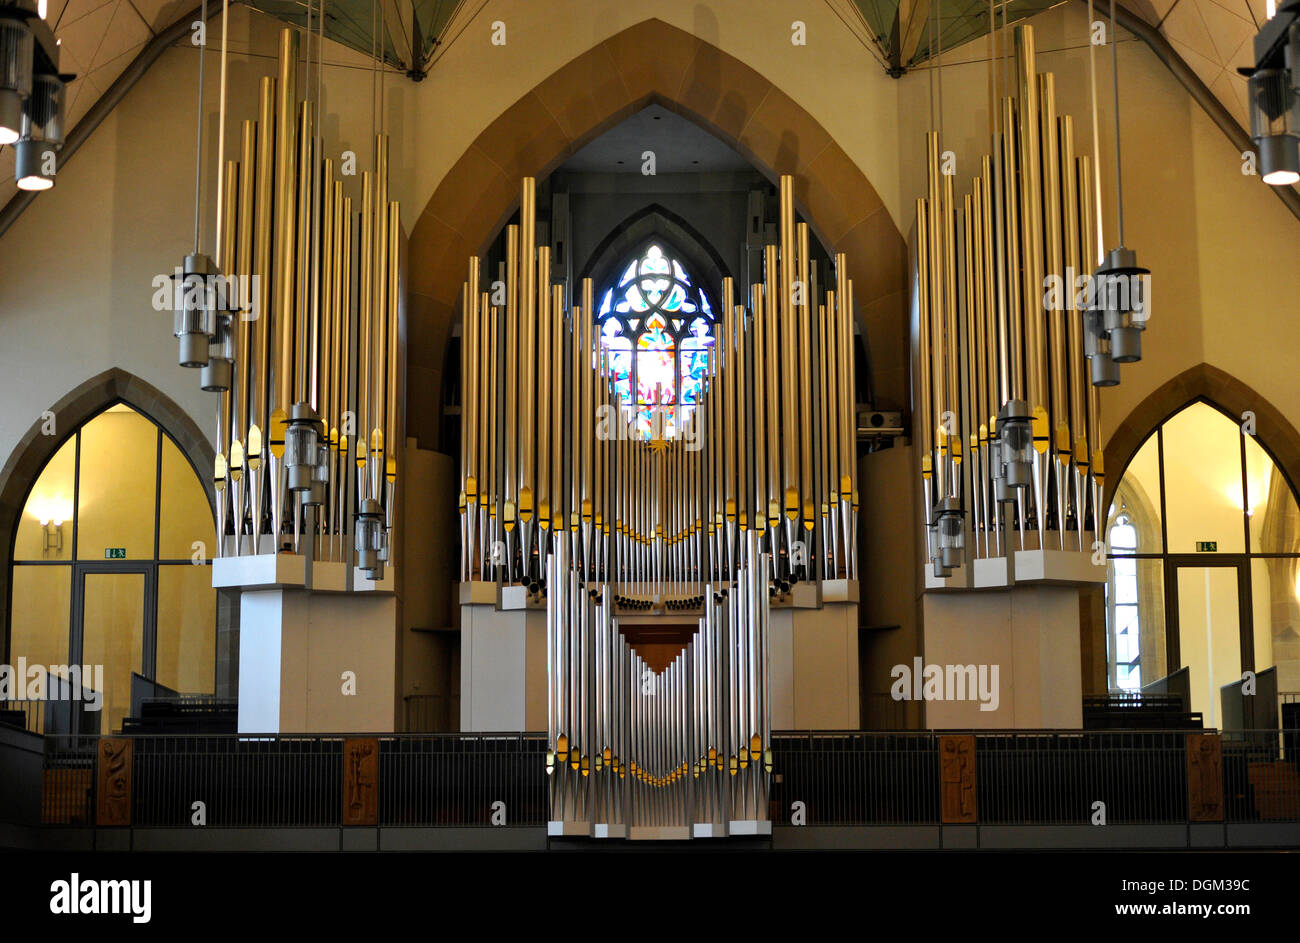 New Muehleisen pipe organ, indoor photo of Stiftskirche church in Stuttgart, landmark and the oldest Protestant church of - Stock Image